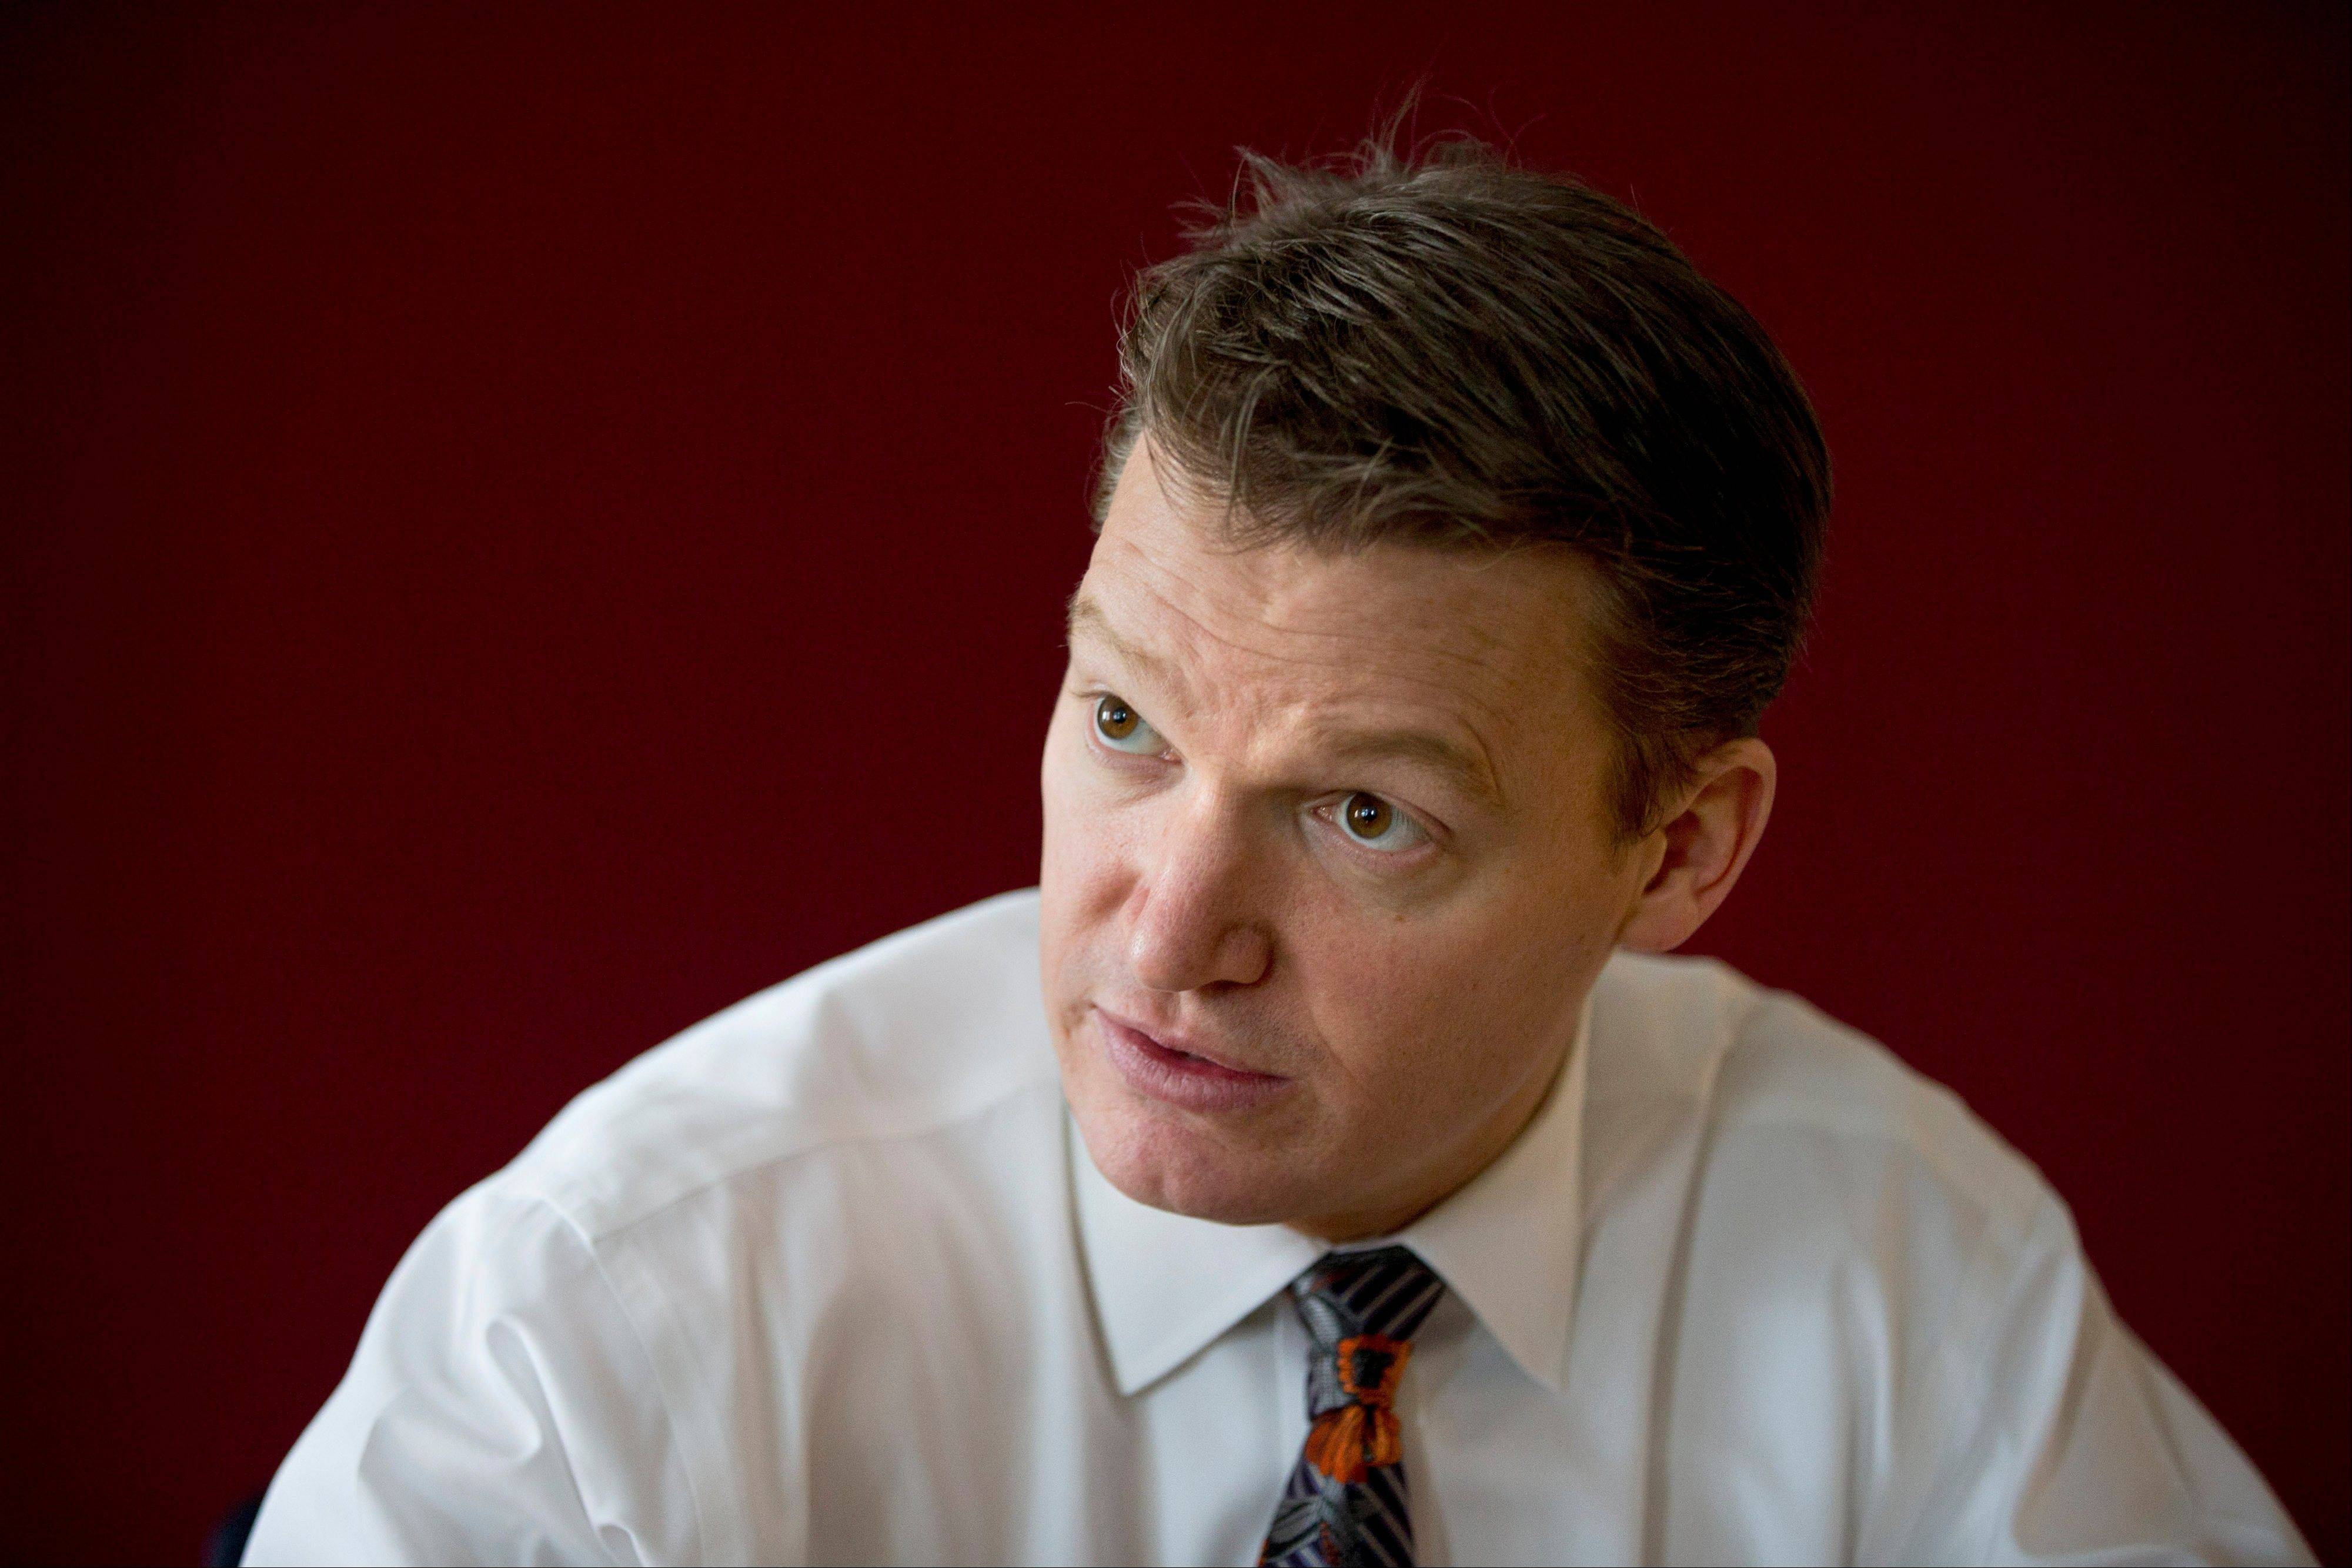 Mandiant founder and CEO Kevin Mandia is seen in his office in Alexandria, Va., Wednesday. His private technology security firm described in extraordinary detail efforts it blamed on a Chinese military unit to hack into 141 businesses, mostly inside the U.S., and steal commercial secrets. China denies the claim.